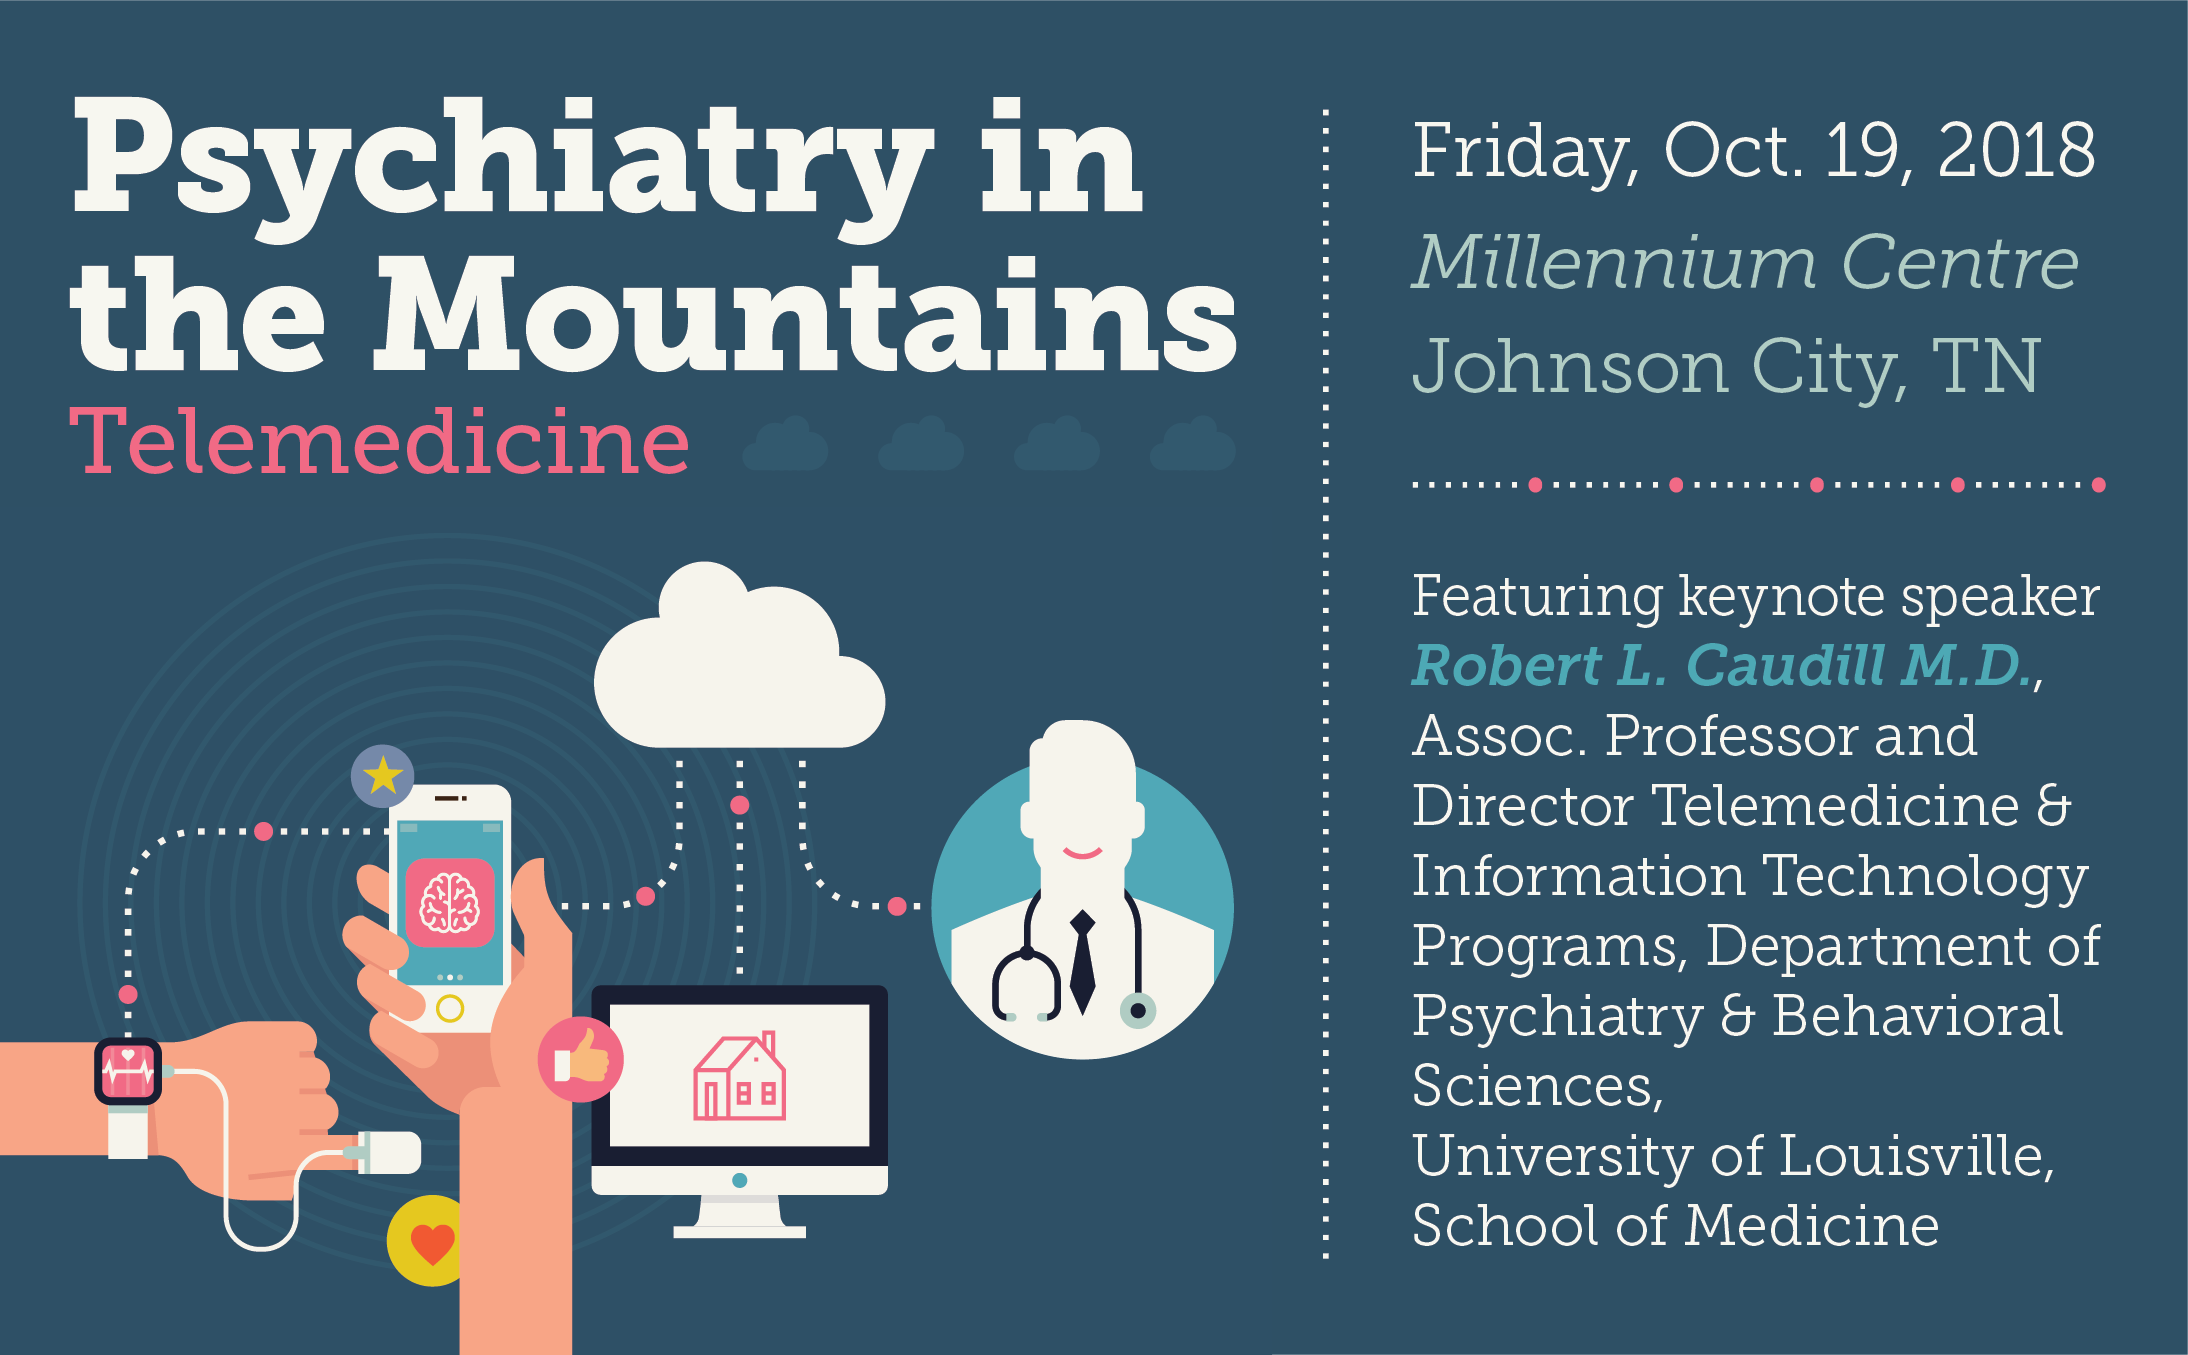 Psychiatry in the Mountains: Telemedicine